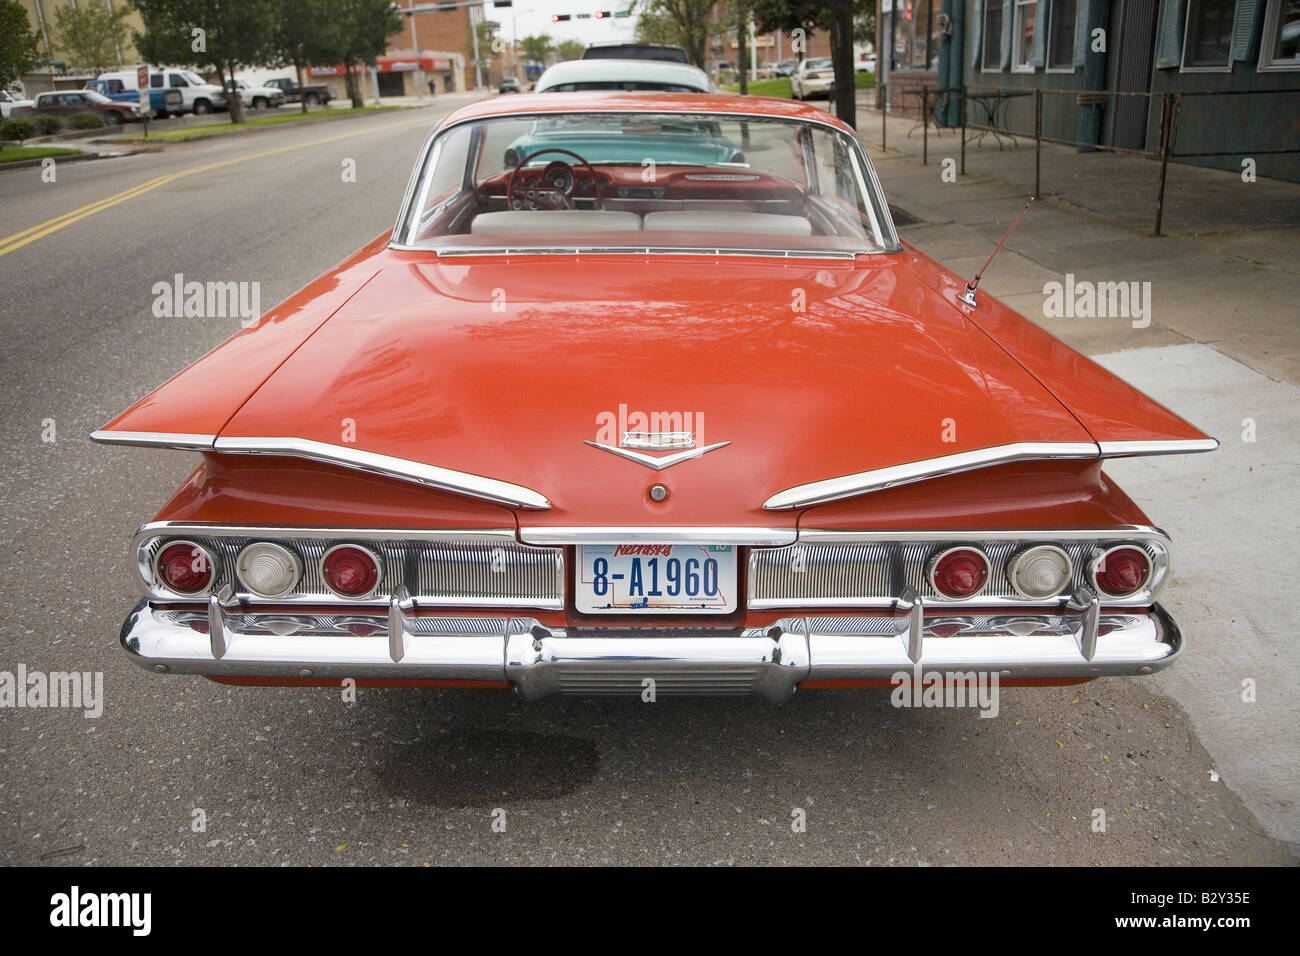 1960 Restored Red Chevy Impala Grand Island Nebraska Stock Photo